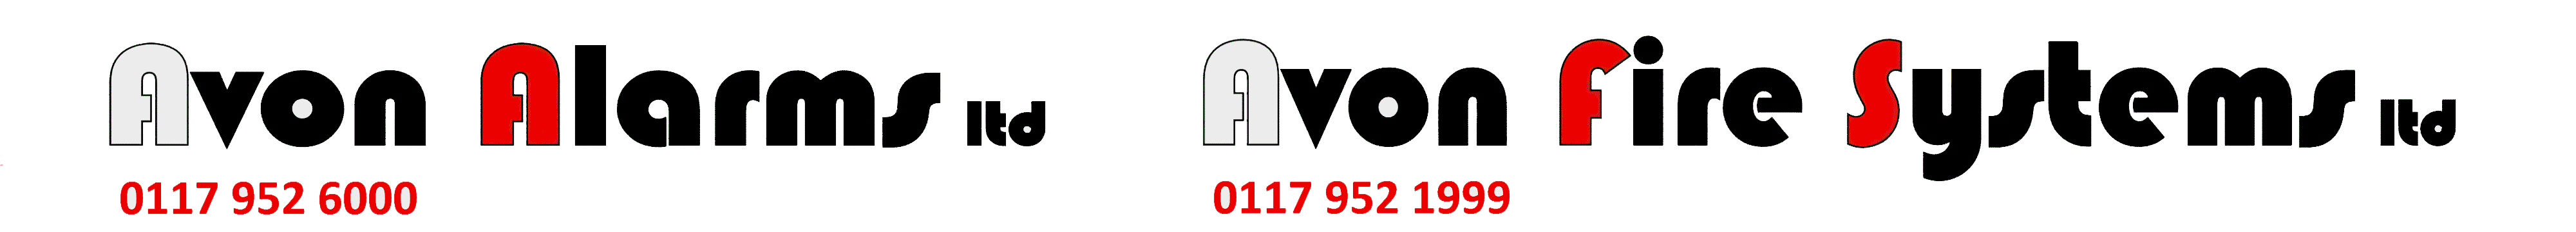 Avon Alarms & Avon Fire Systems